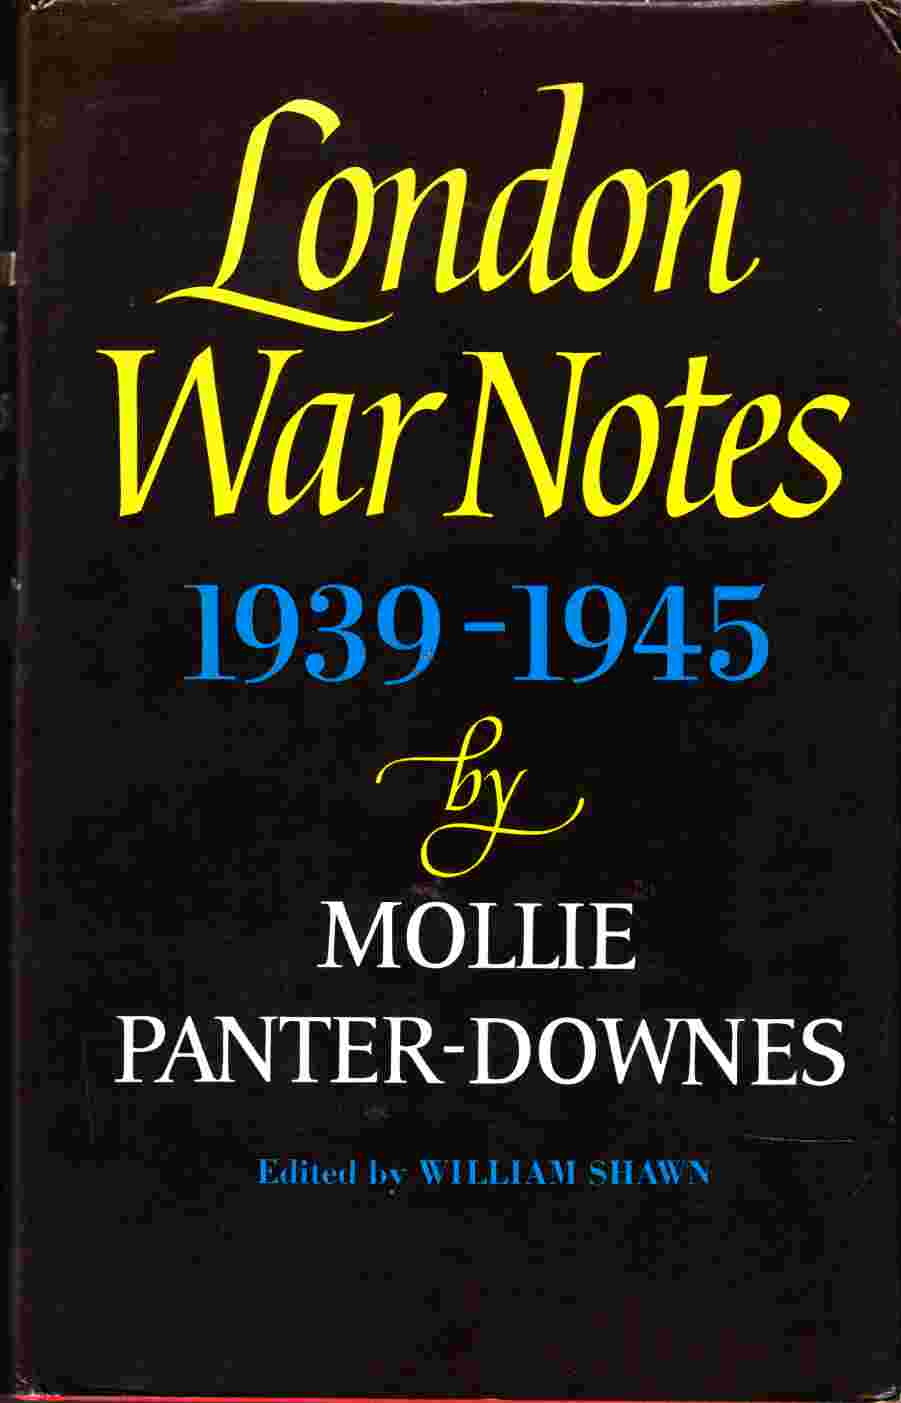 Image for London War Notes 1939-1945